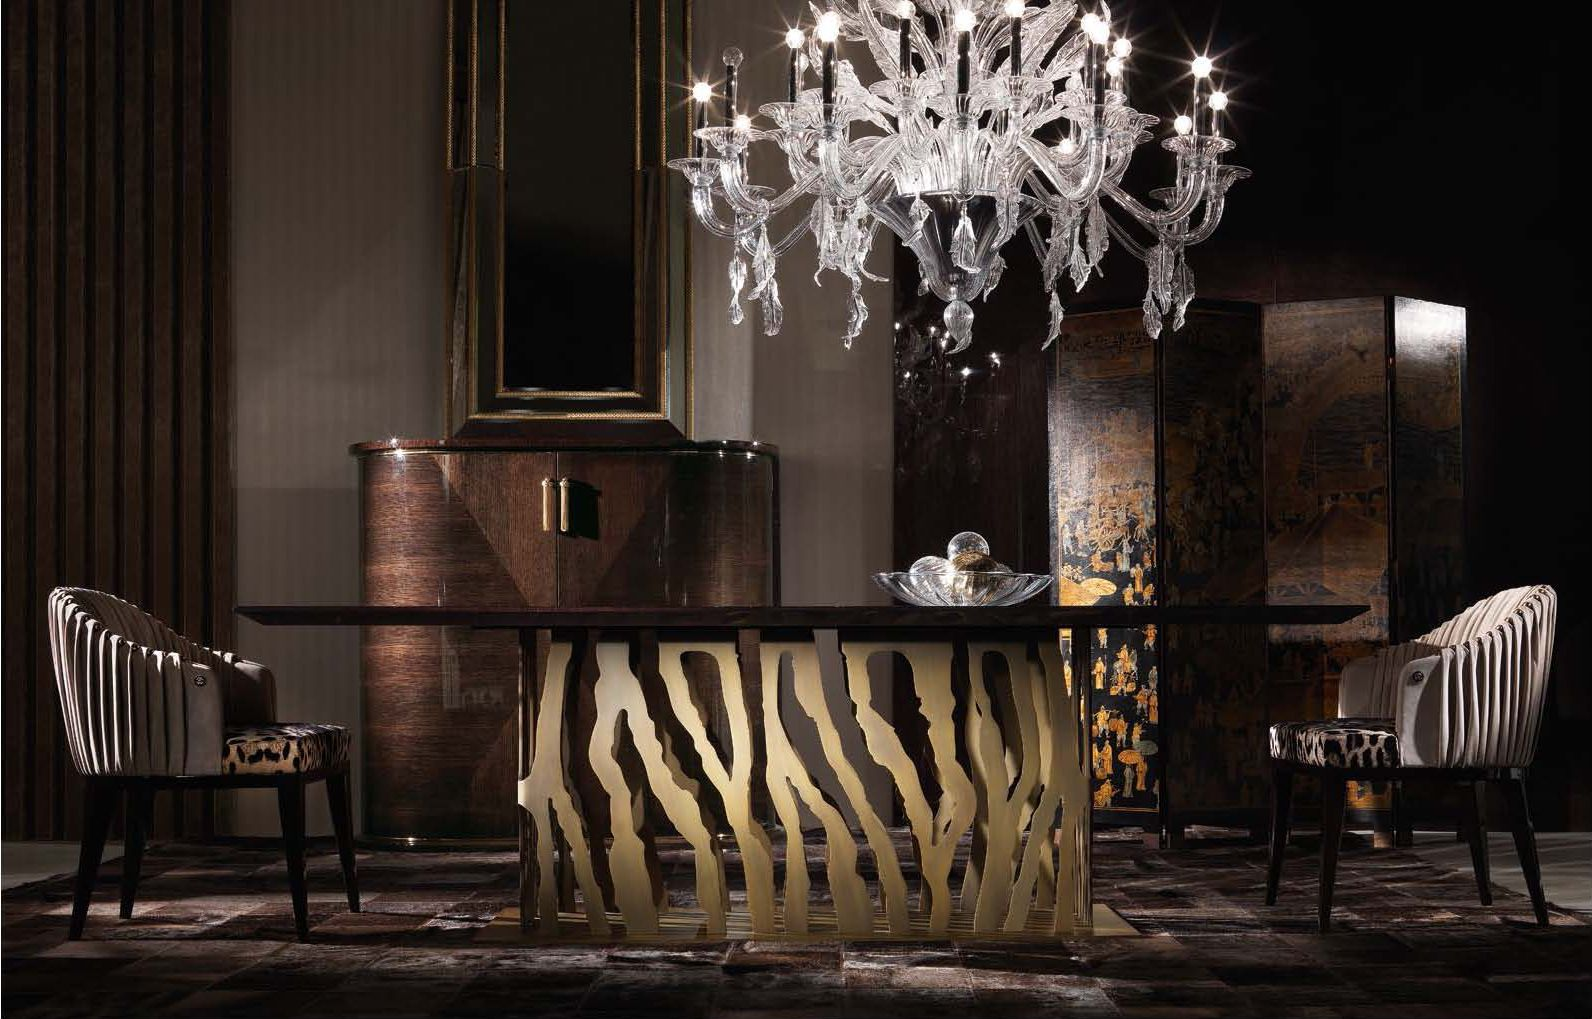 Muebles Roberto - Roberto Cavalli Furniture Roberto Cavalli Furniture B 52 [mjhdah]https://www.bestfurniture-bg.com/full/files/13_72.jpg